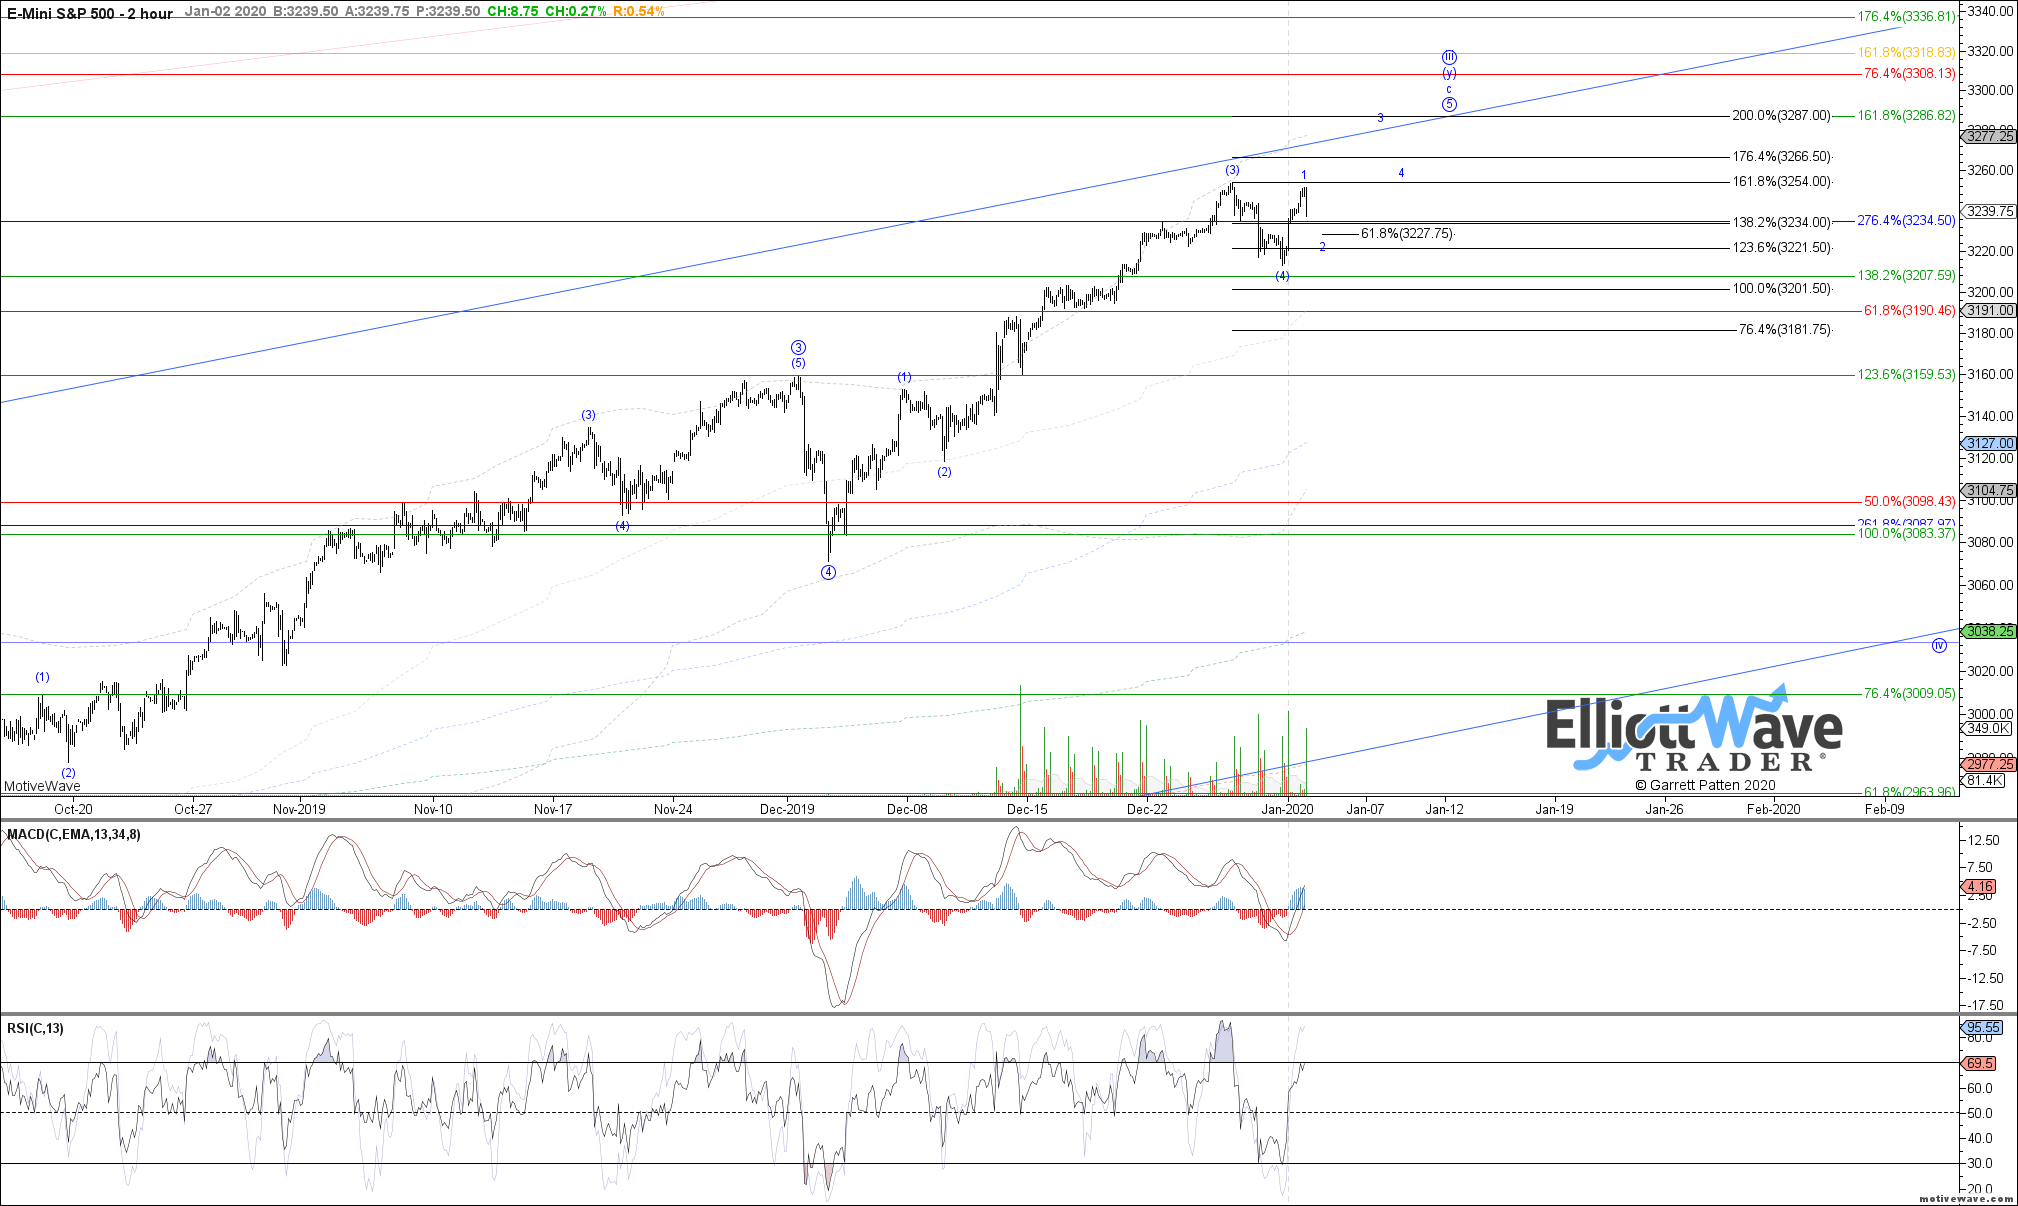 ES H20 - Primary Analysis - Jan-02 0721 AM (2 hour)